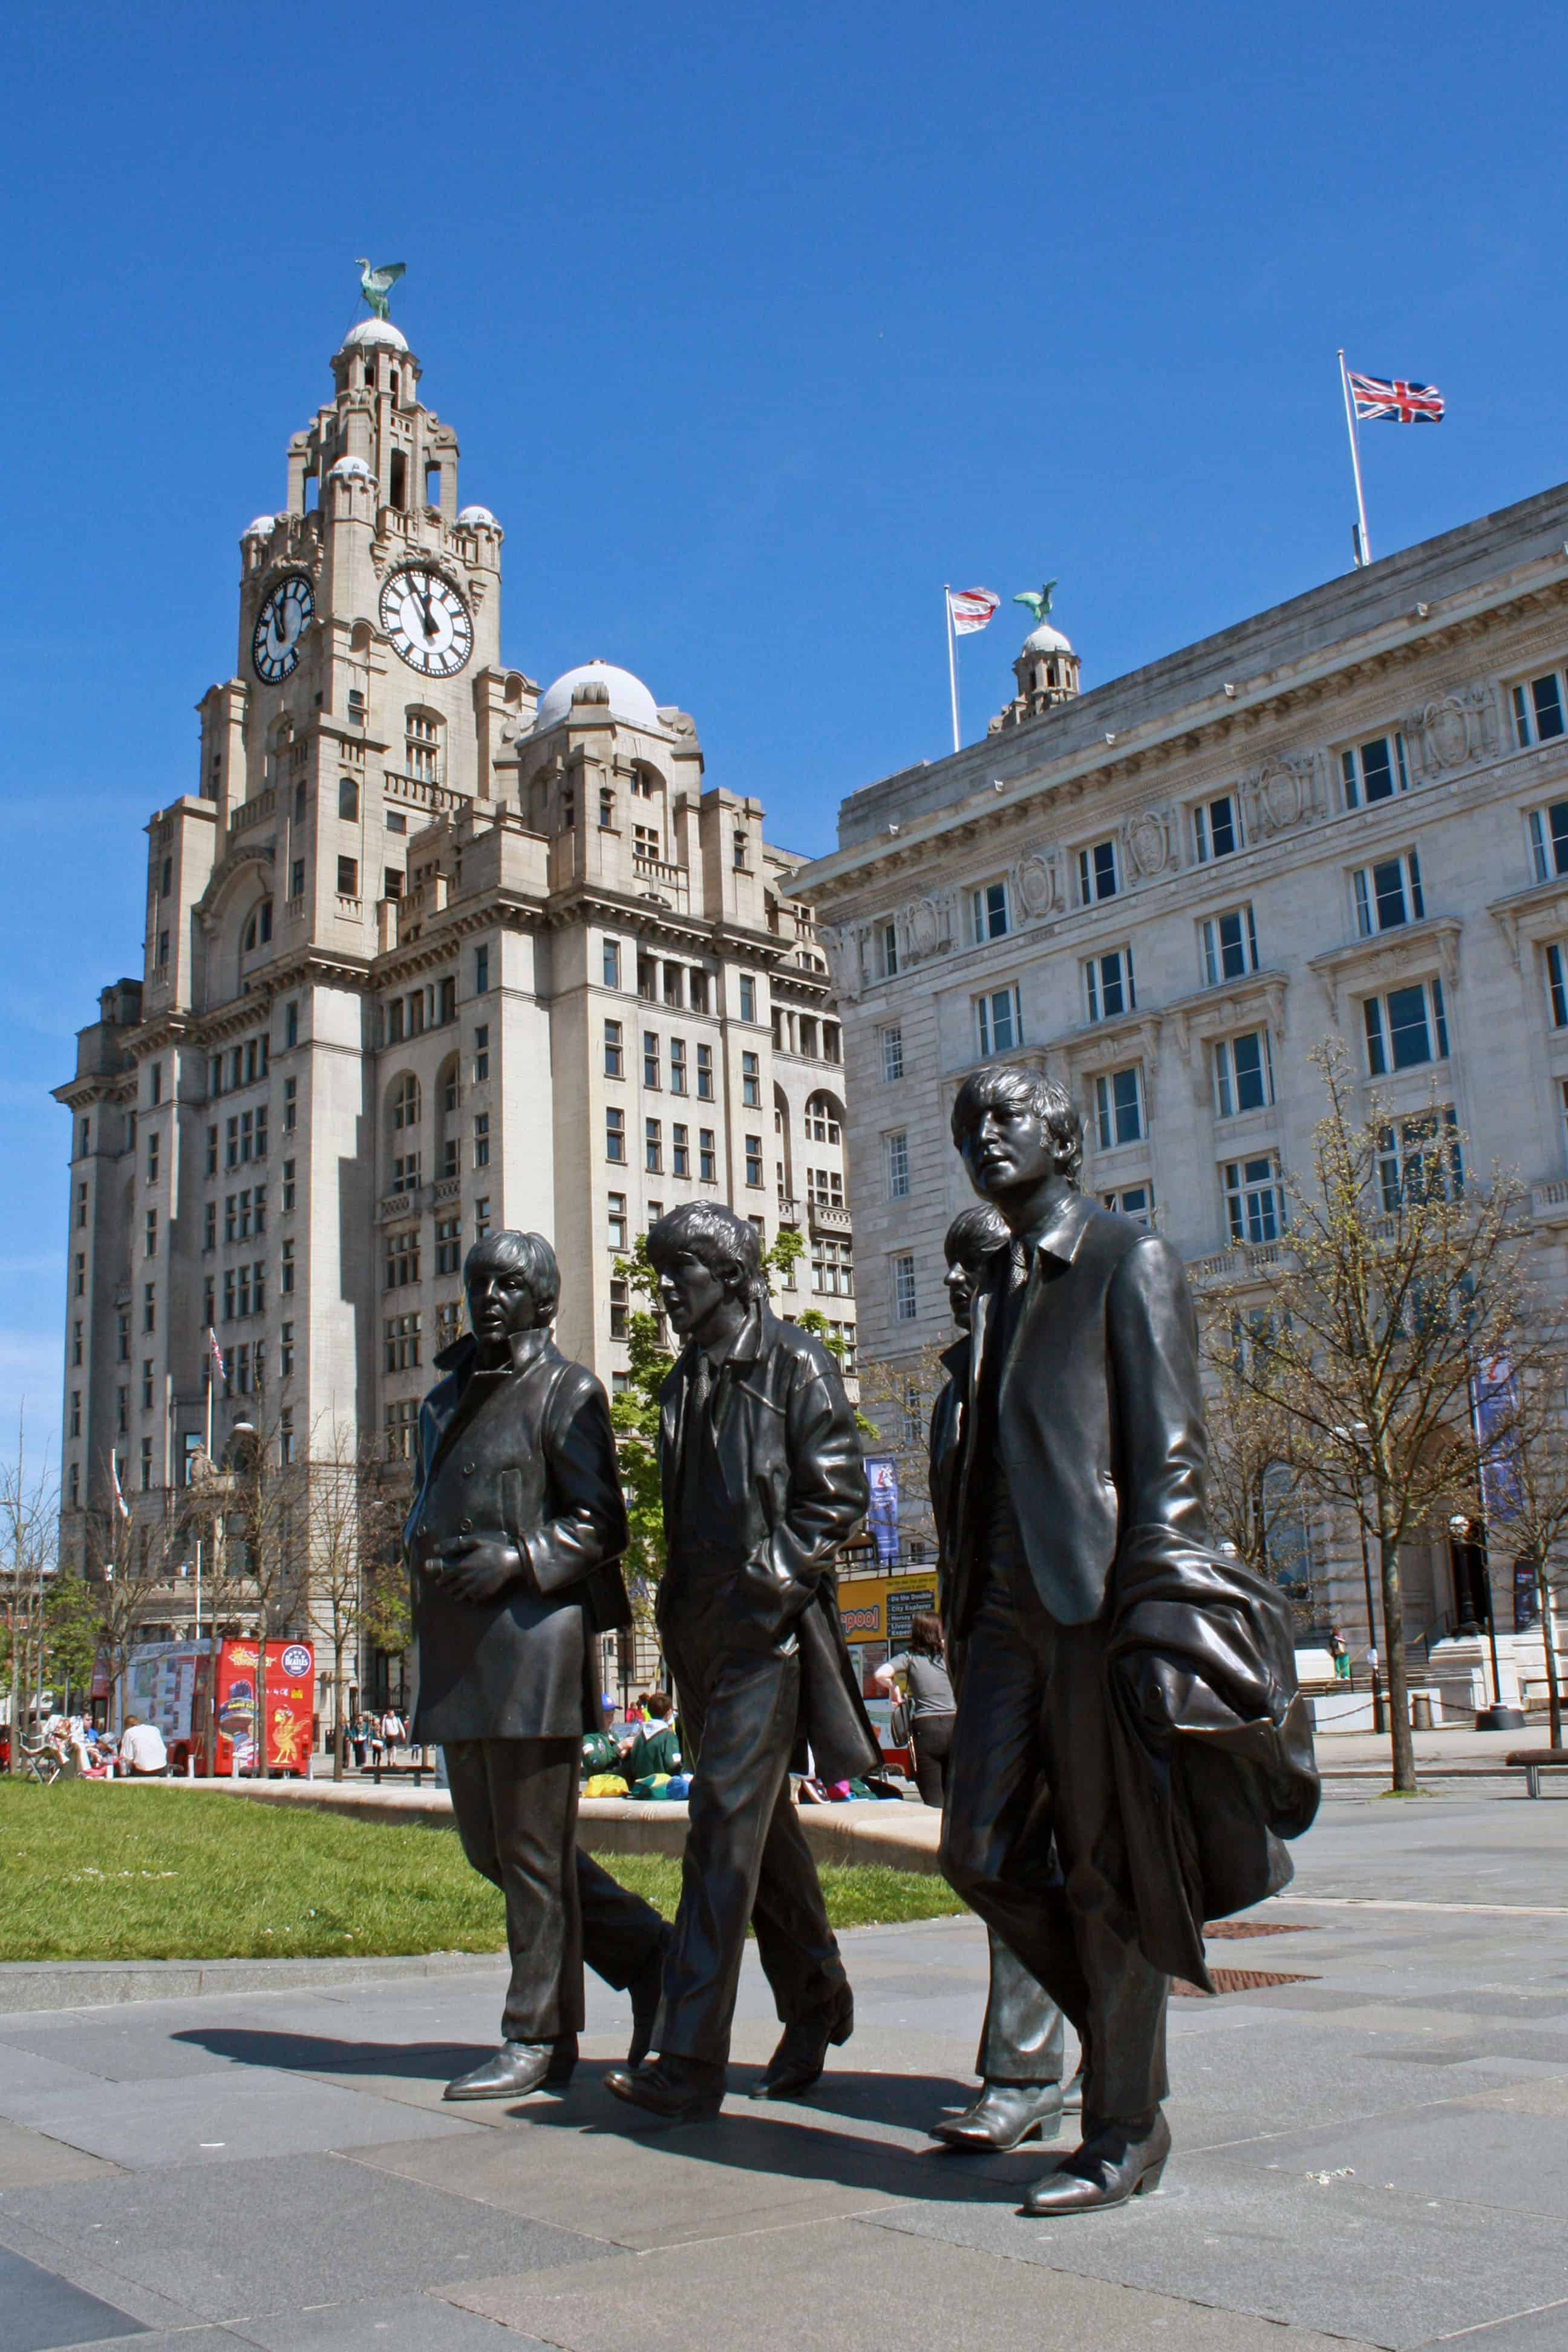 Beatles Statue and Liver Building, Liverpool